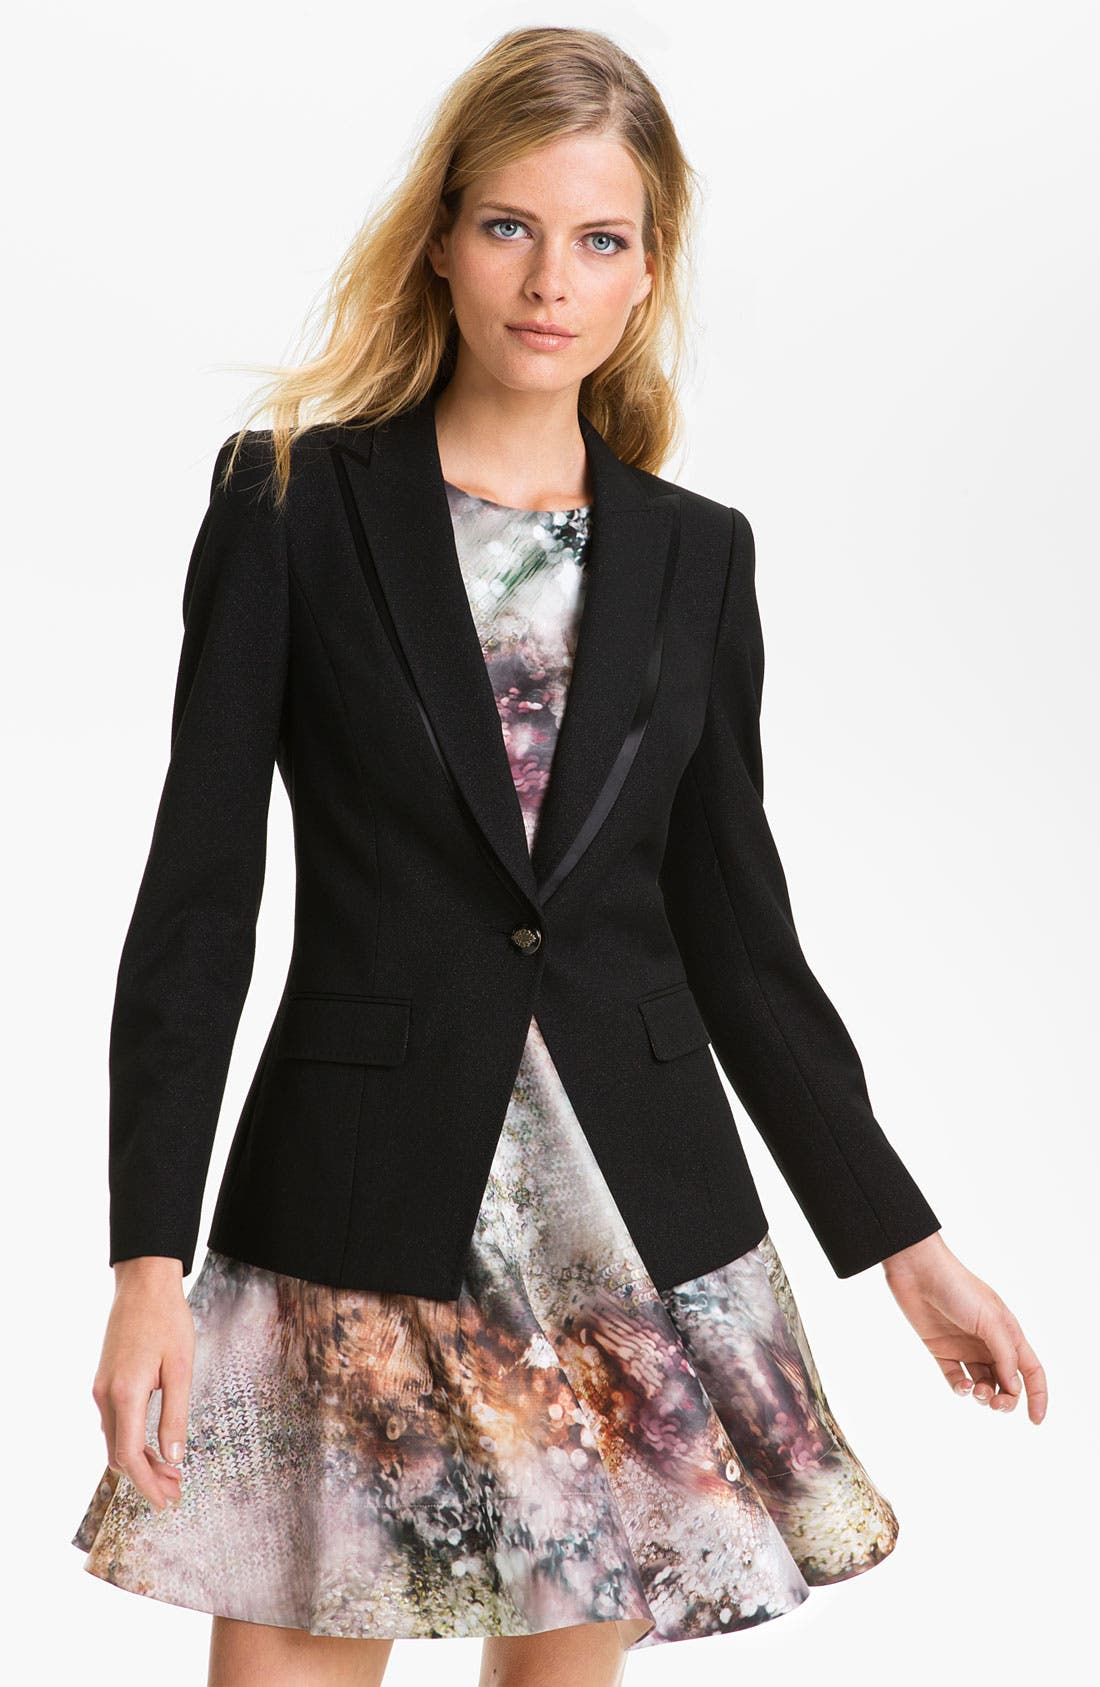 Main Image - Ted Baker London 'Mowna' Suit Blazer